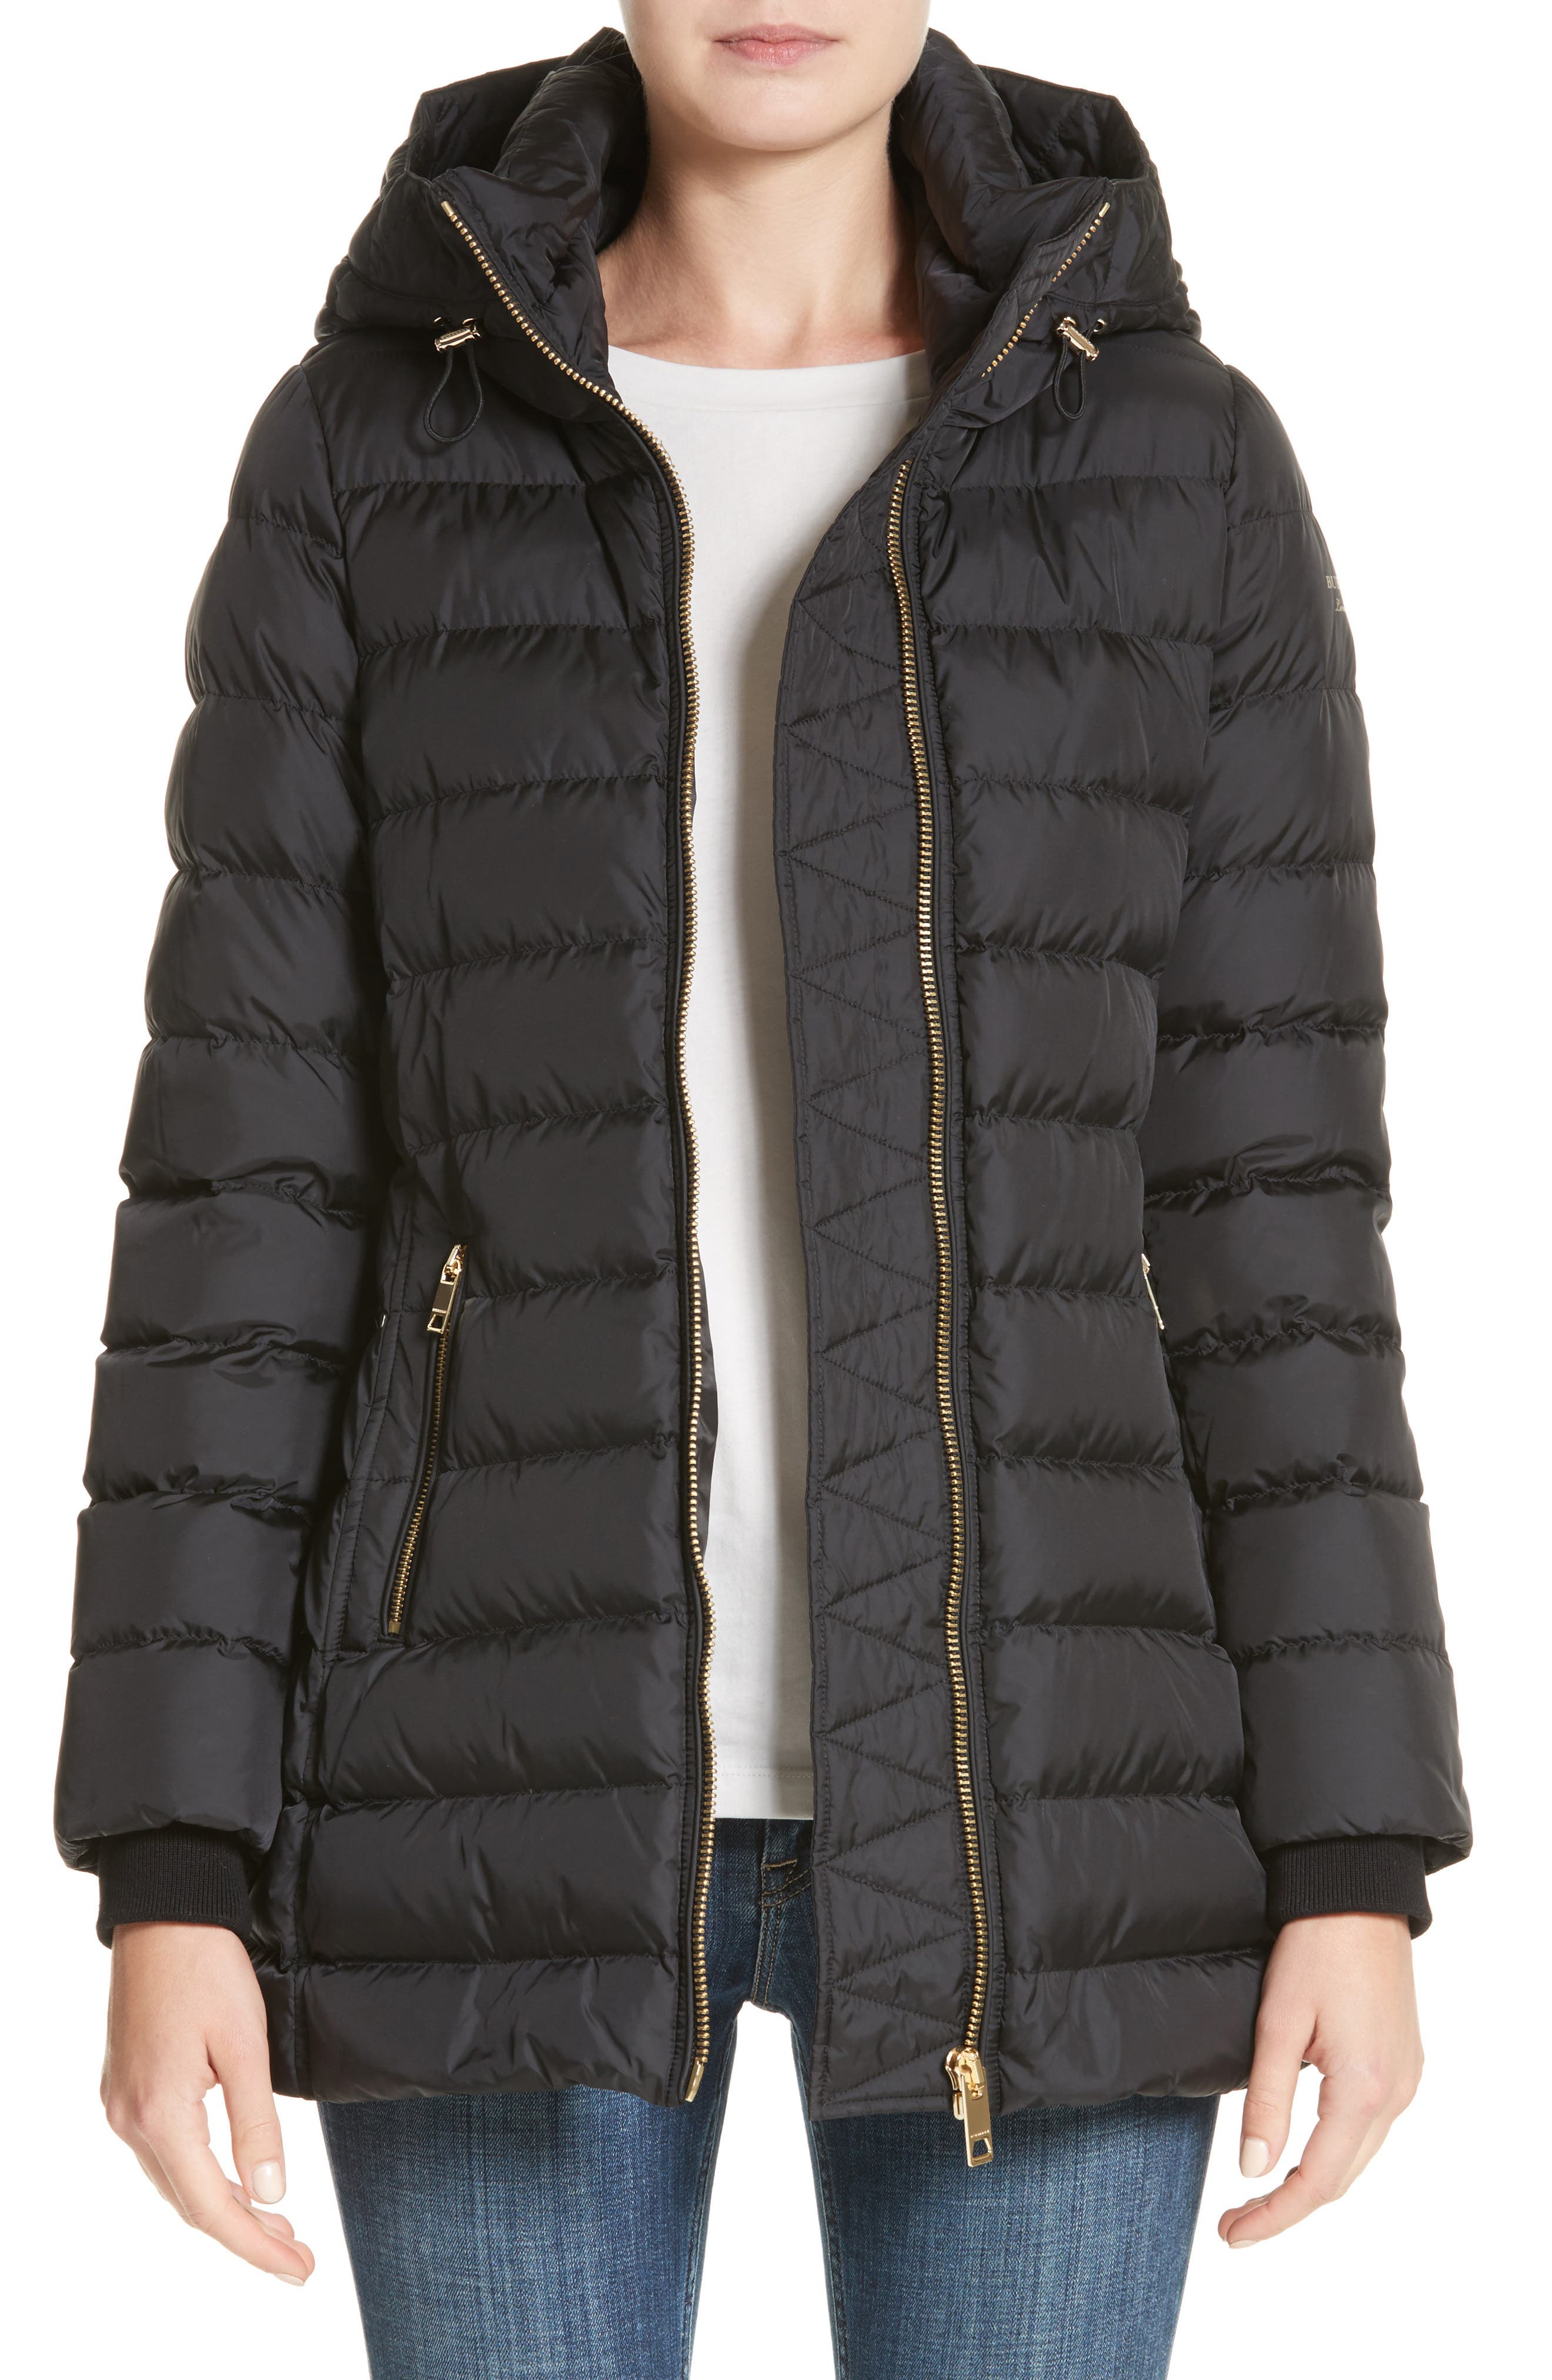 Limefield Hooded Puffer Coat,                         Main,                         color, 001